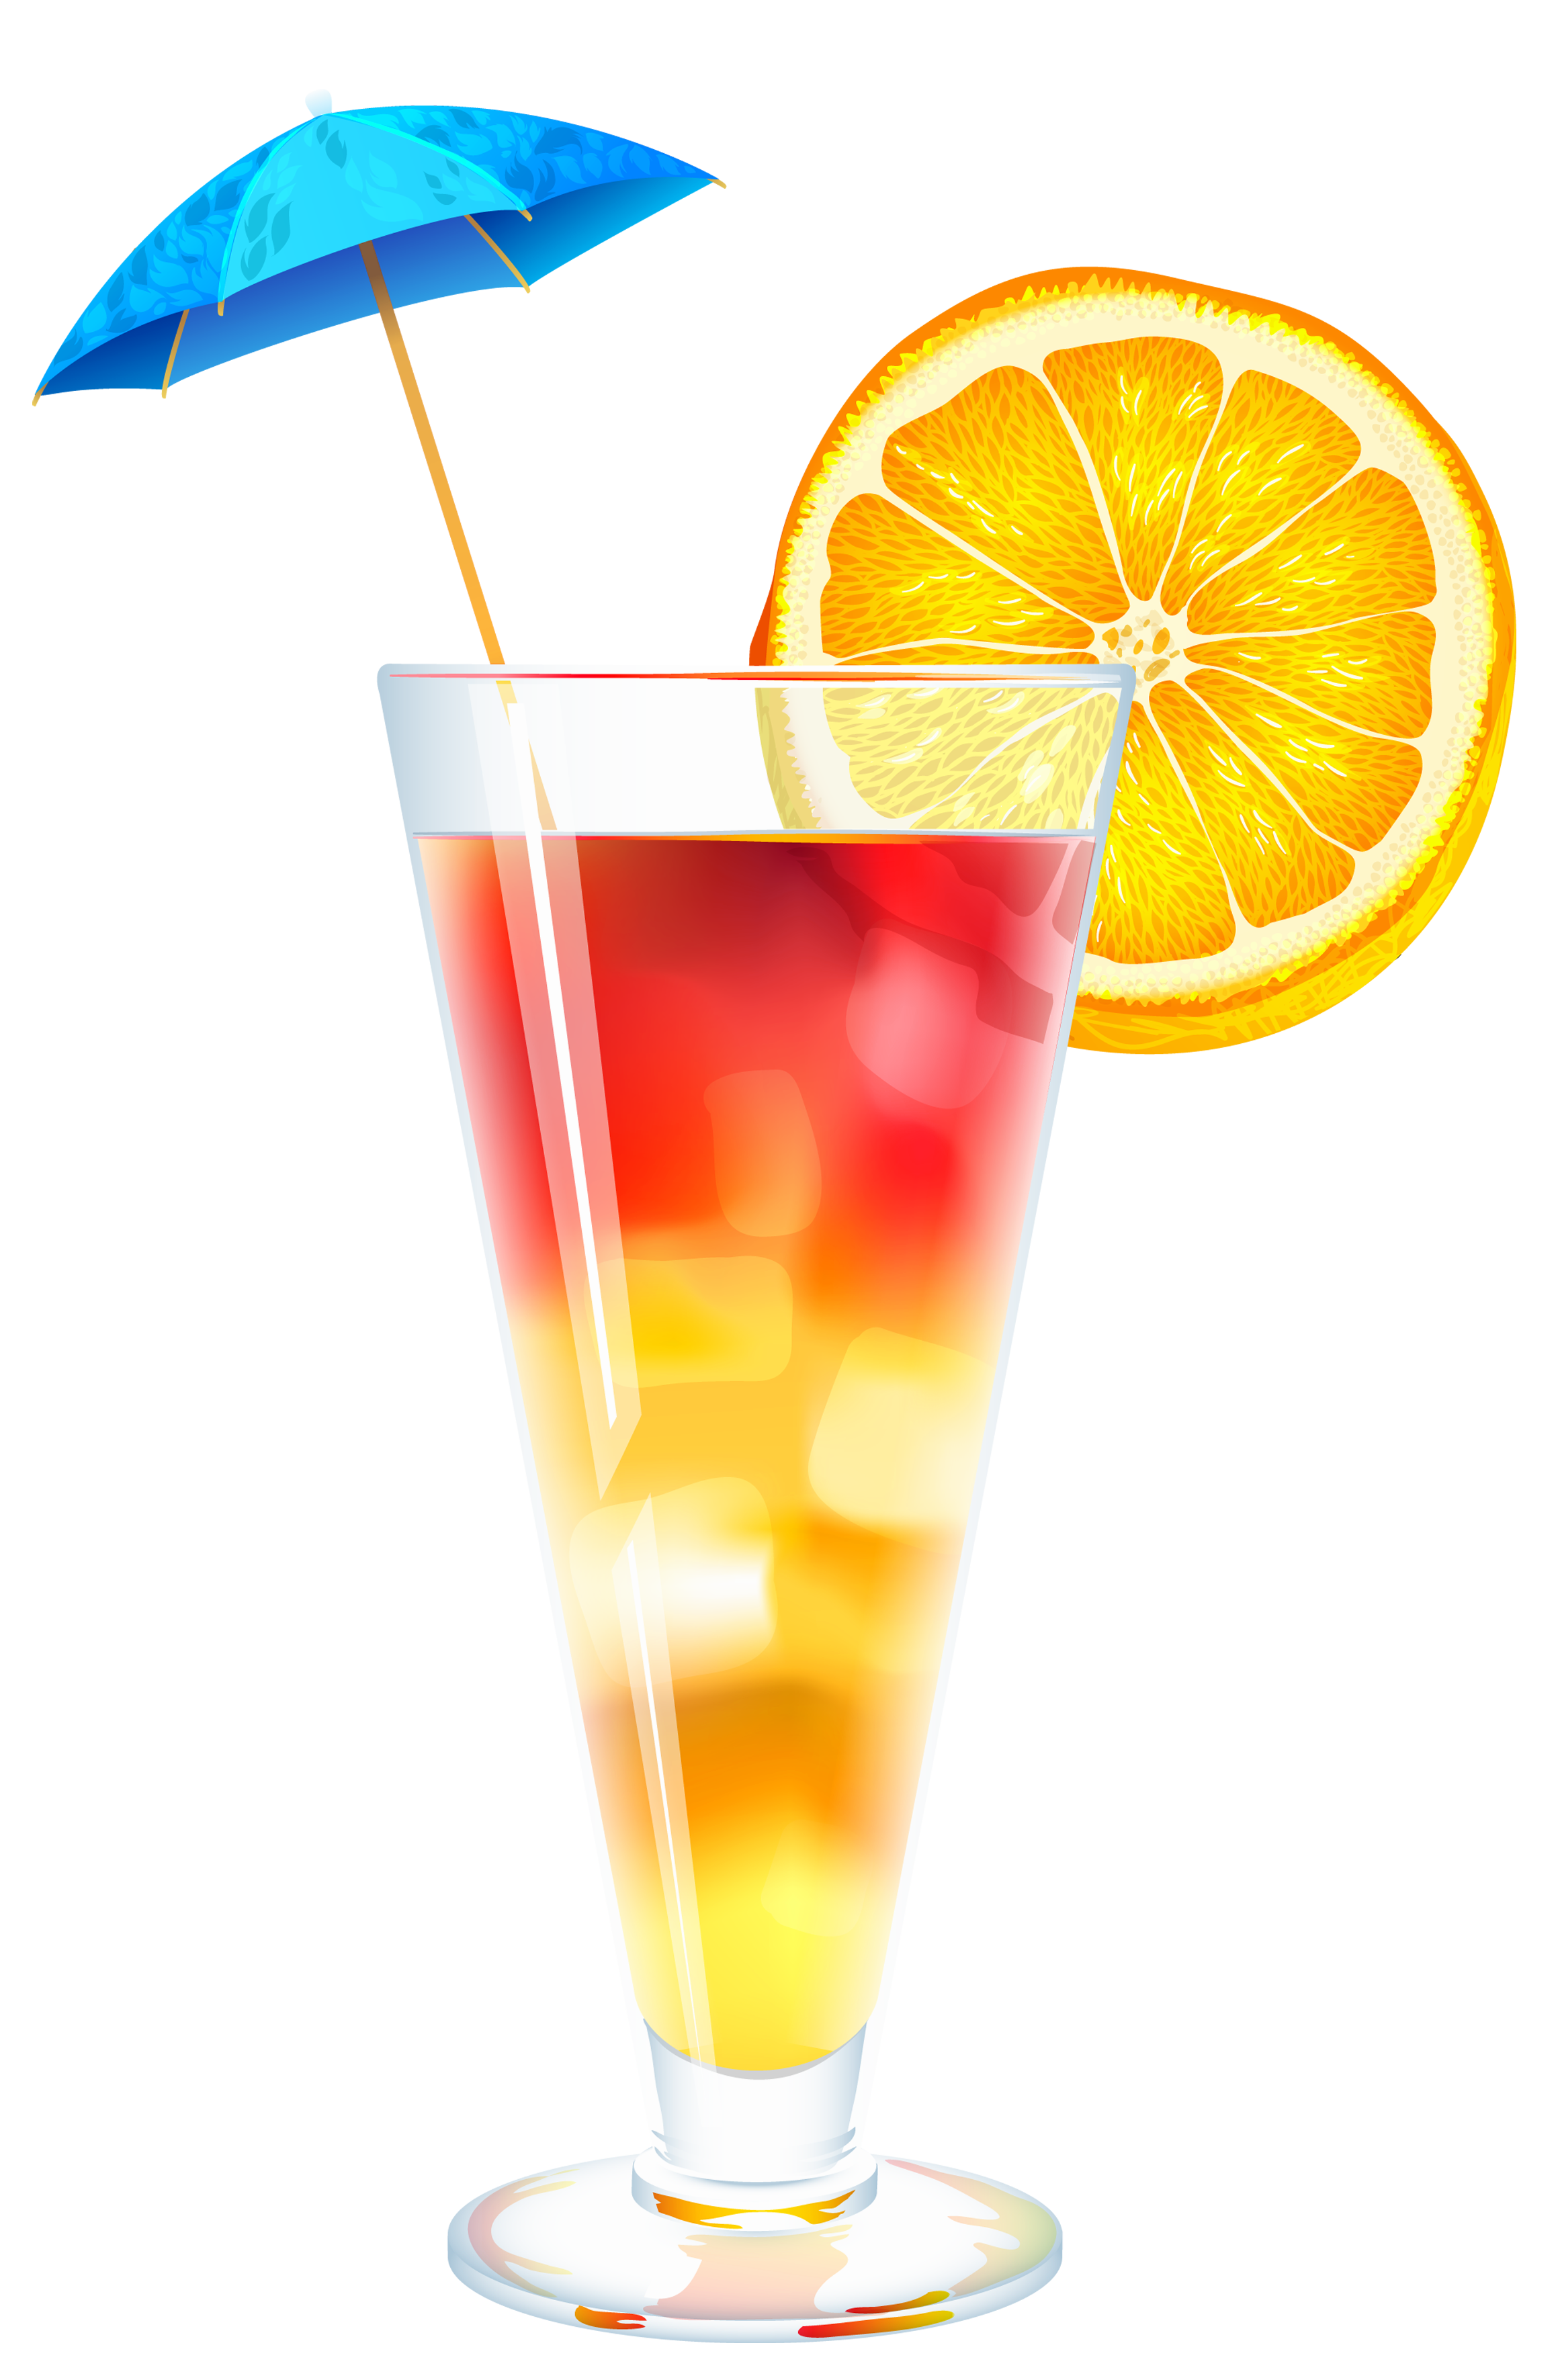 summer cocktail png clipart image clip art drinks ice cream rh pinterest com drinks clipart images drinks clipart free